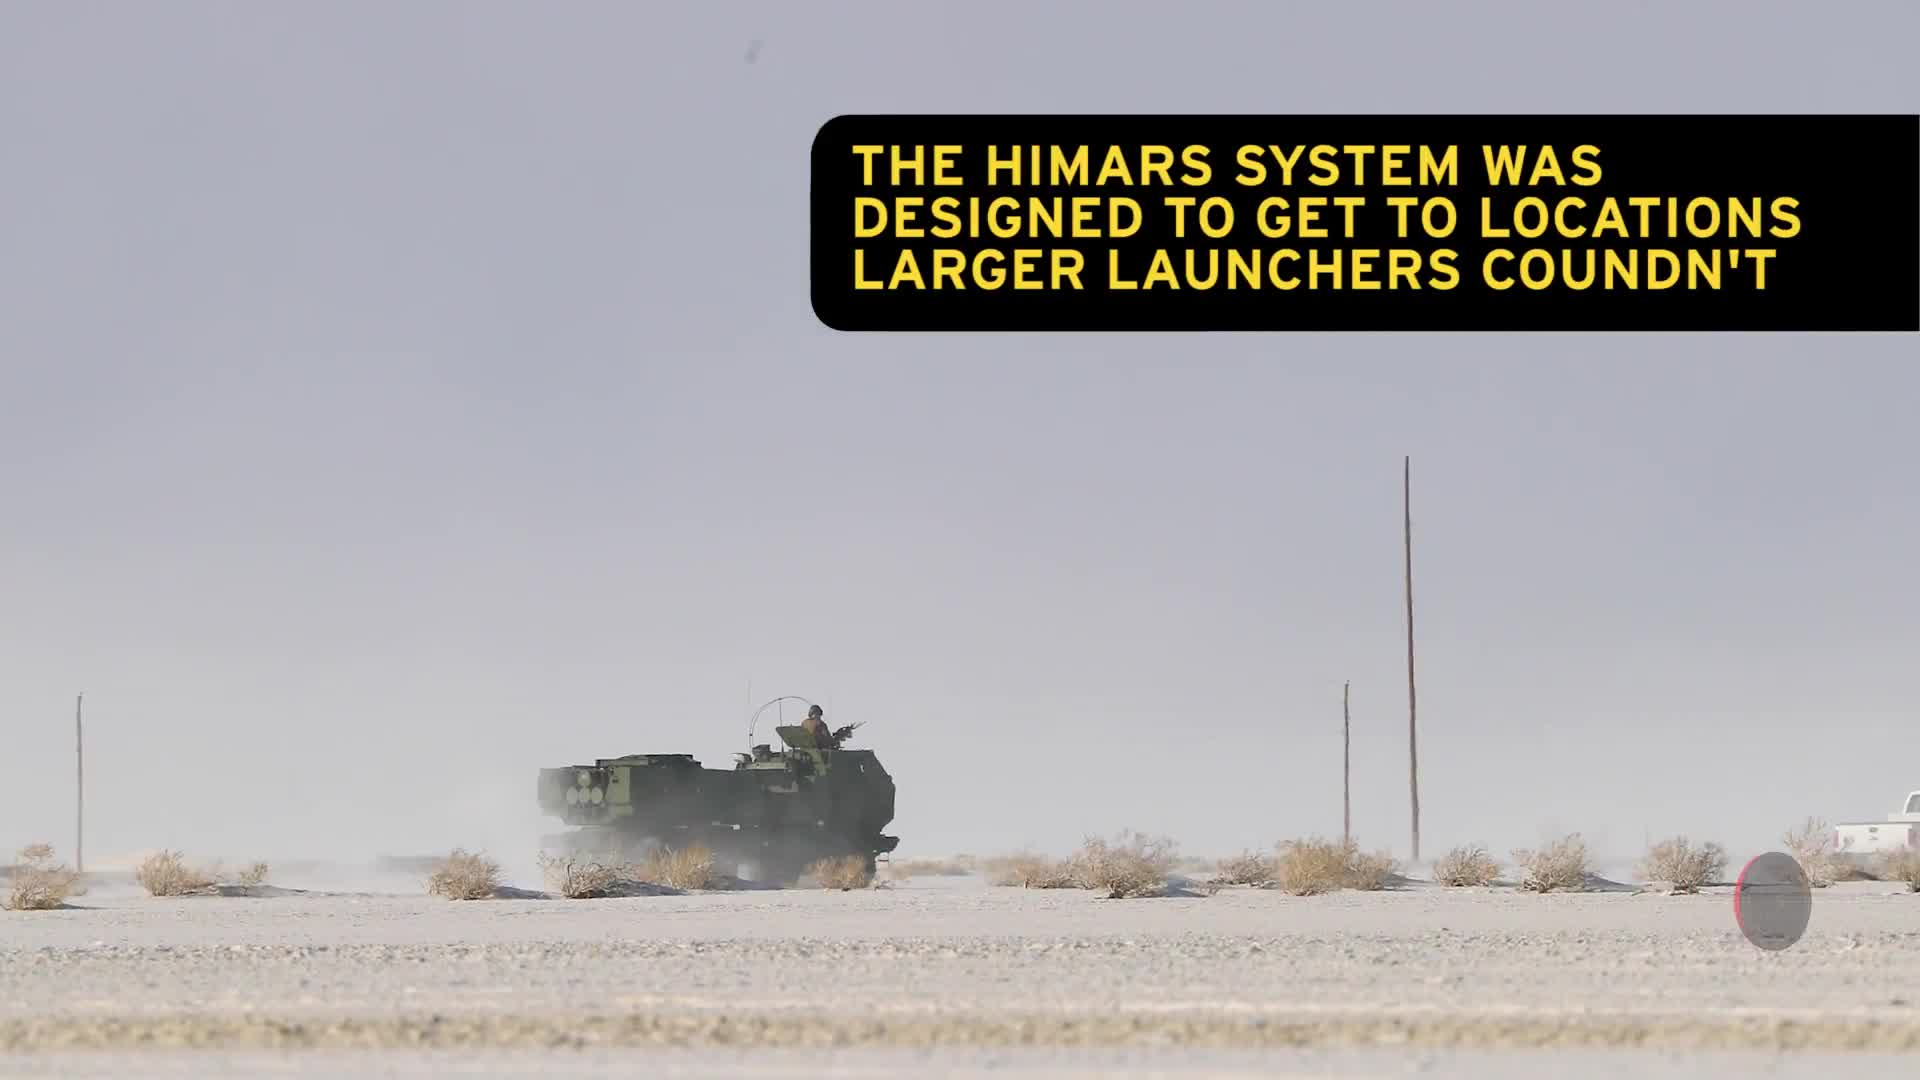 HIMARS, Military Training, Missile Launch, US Marines, USMC, WSMR, White Sands Missile Range, Marine HIMARS rapid unload and fire training GIFs